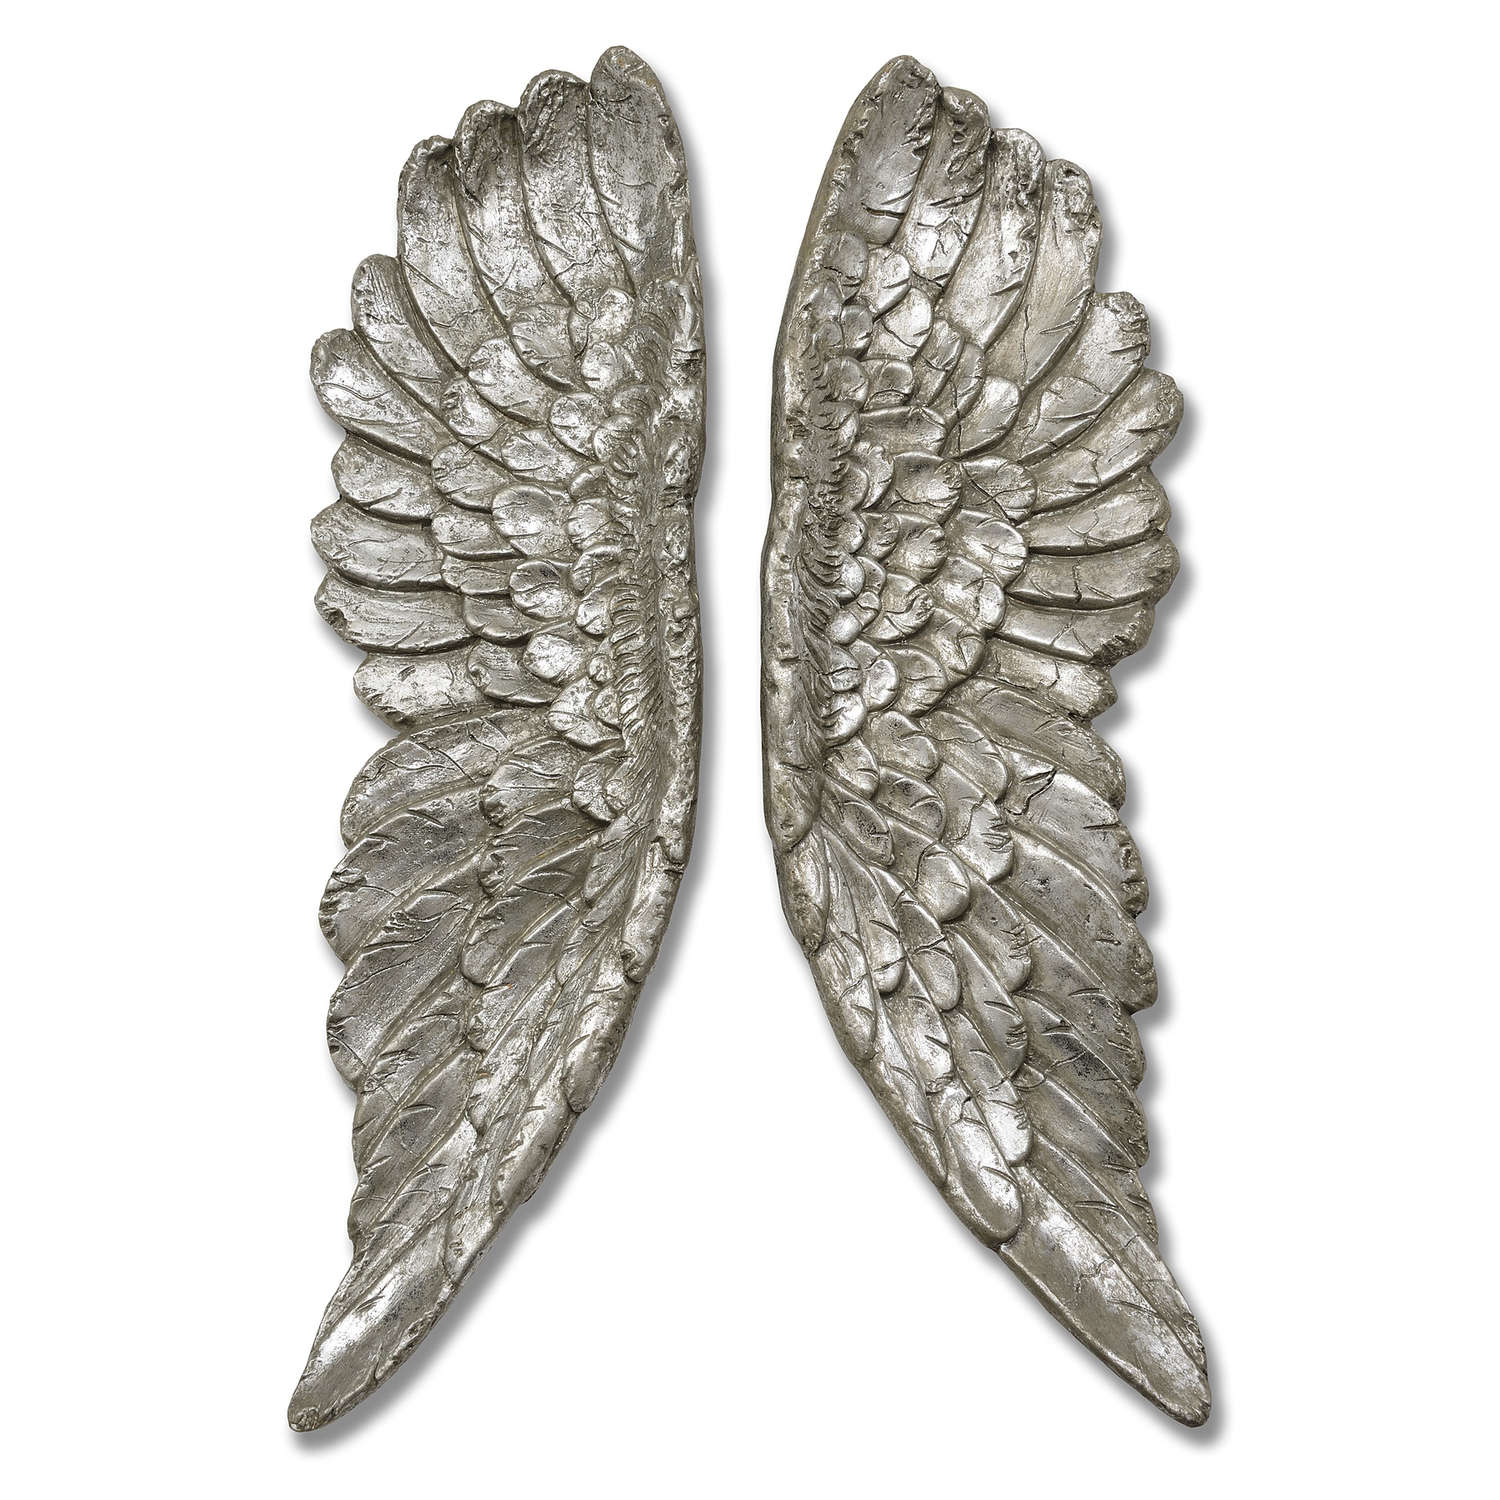 Antique Silver Angel Wings - Image 1